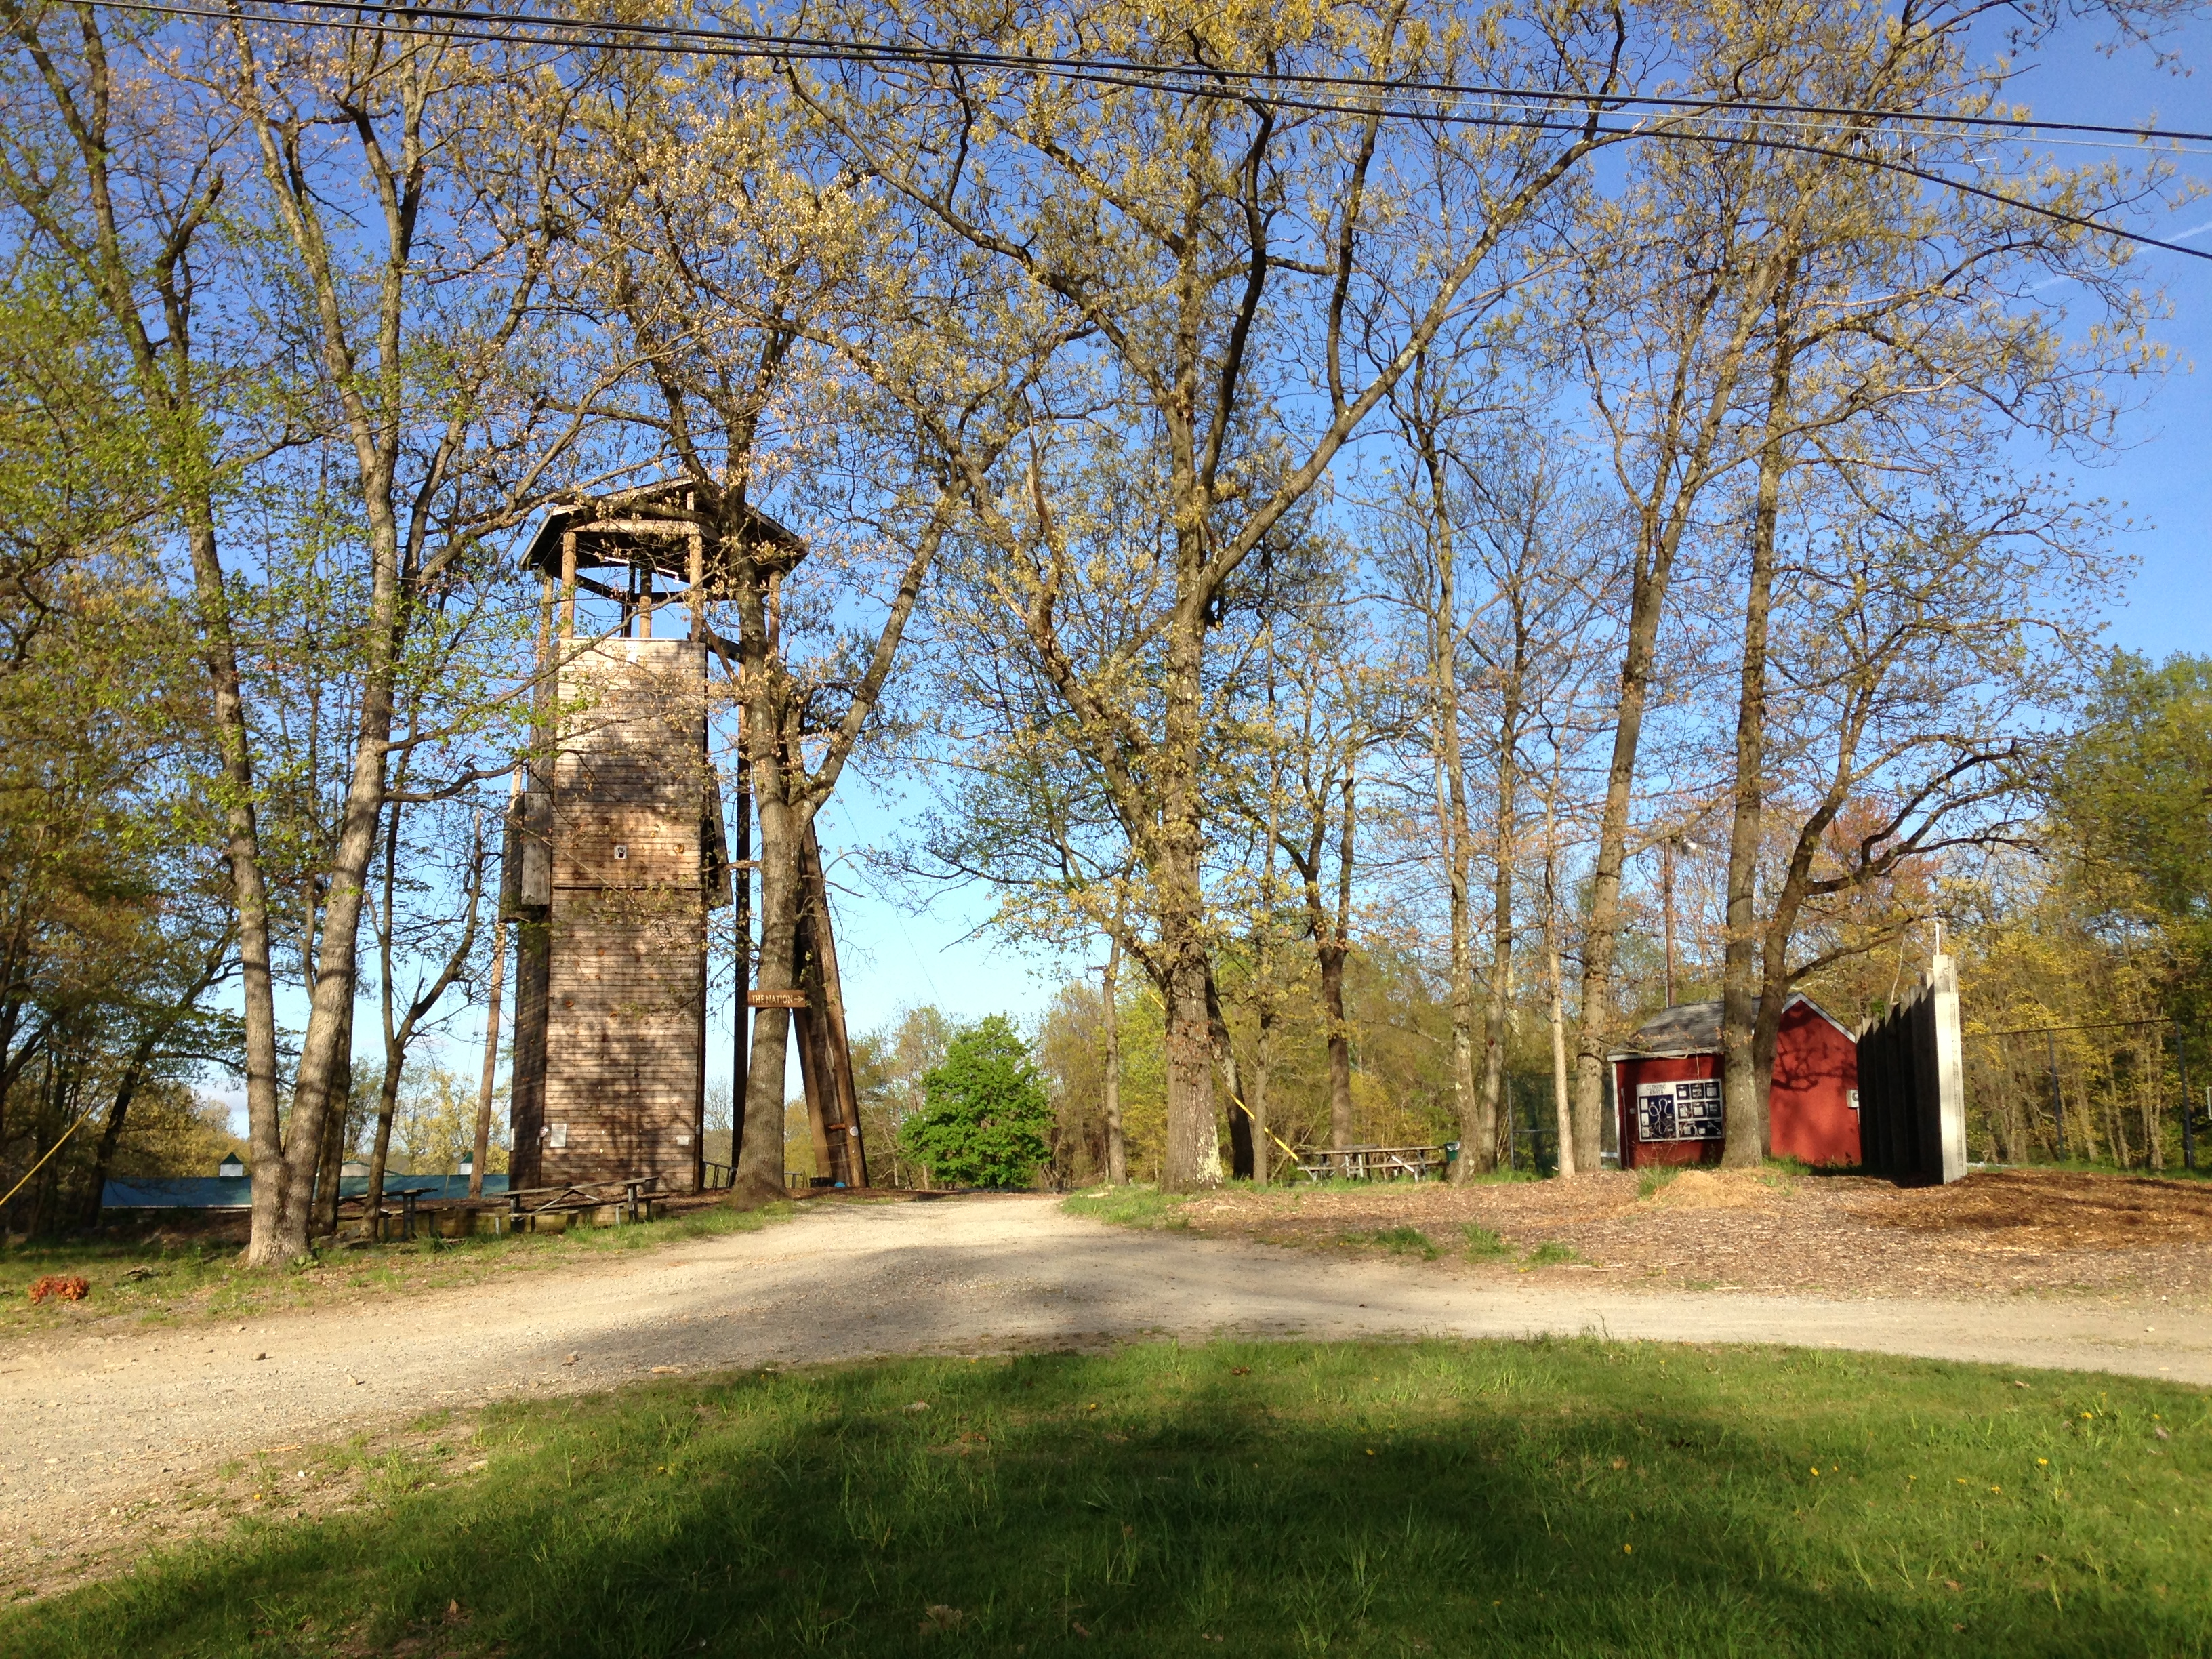 File:2013-05-06 18 26 48 Climbing tower viewed from the